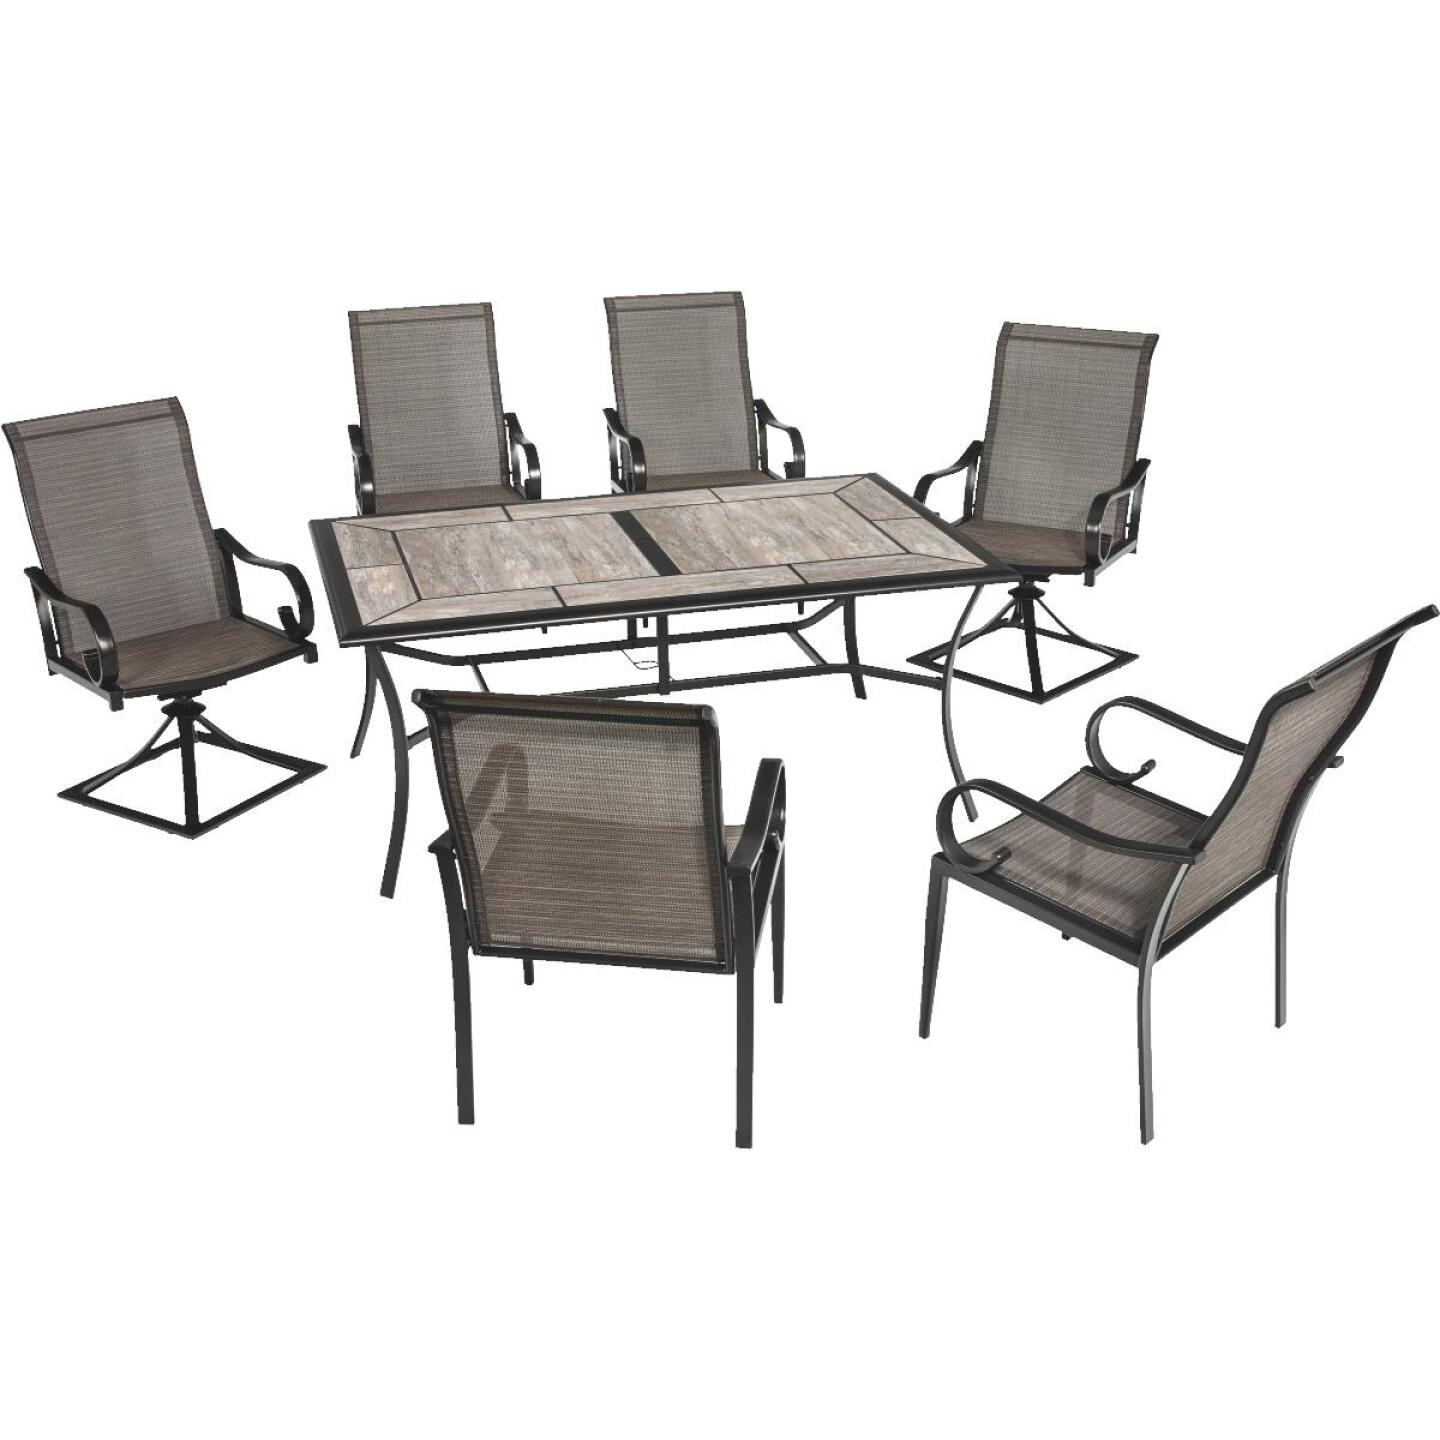 Outdoor Expressions Berkshire 7-Piece Dining Set Image 42